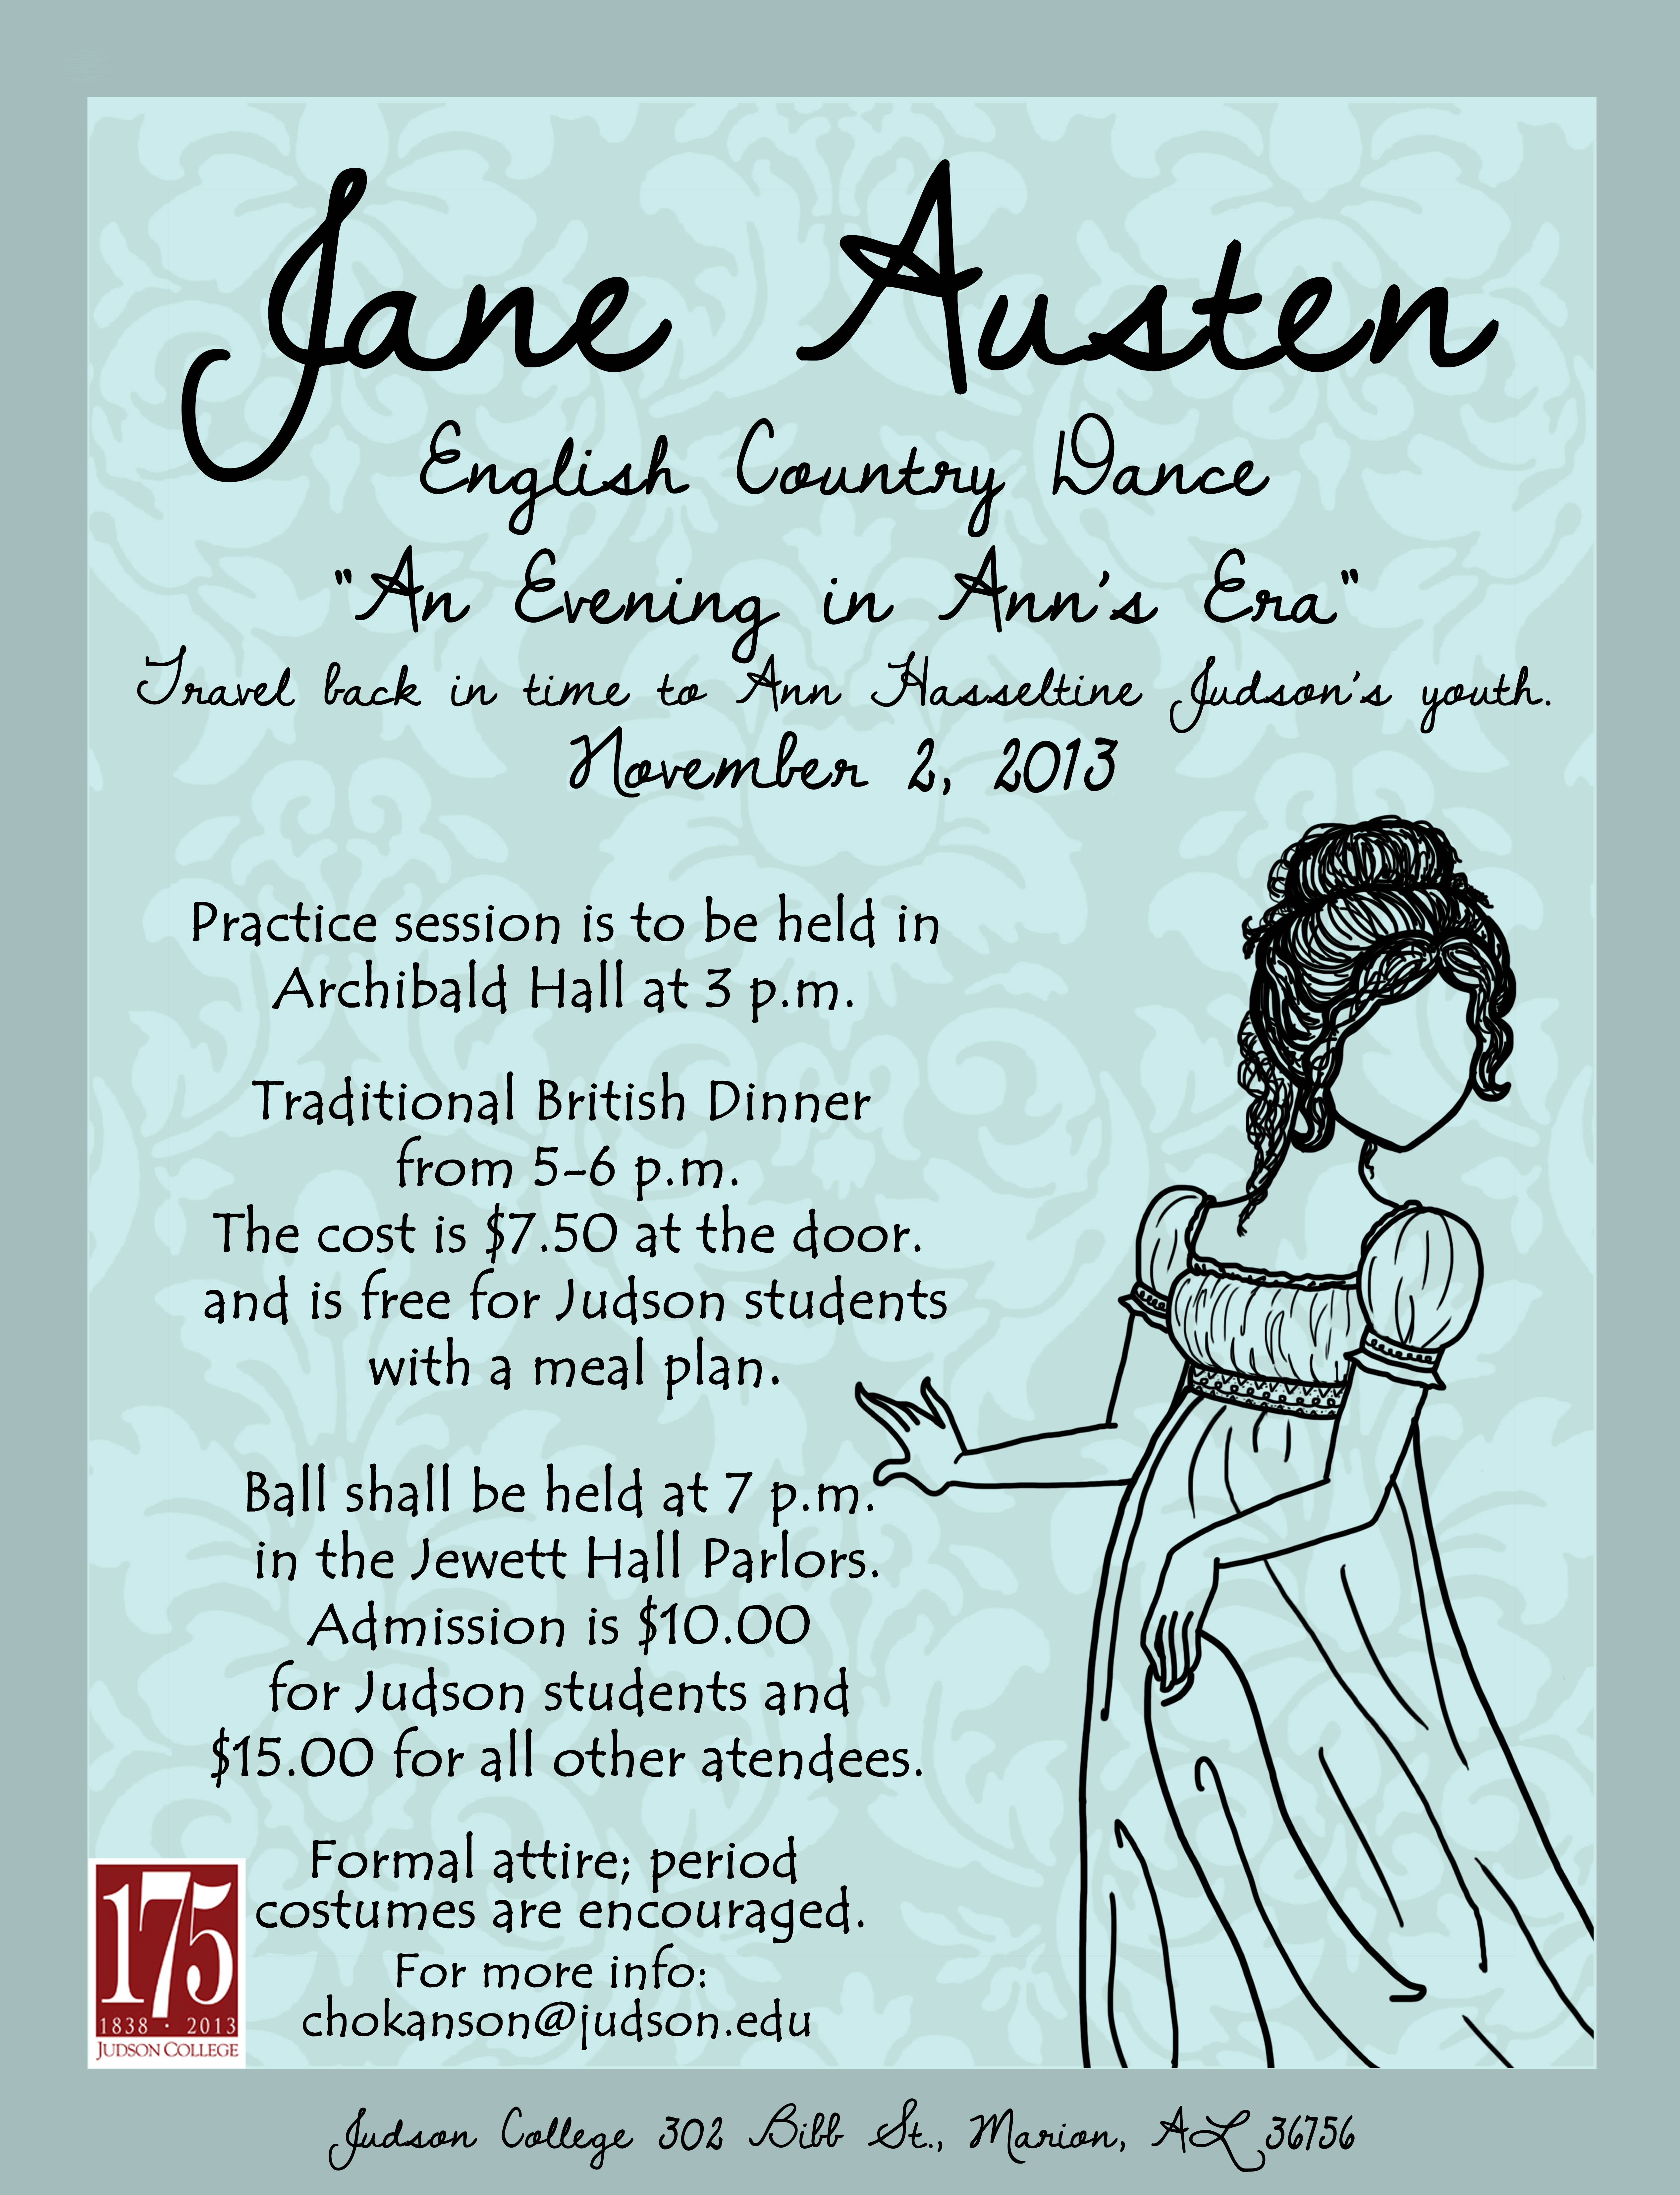 Jane Austen English Country Dance poster | Judson College - Marion